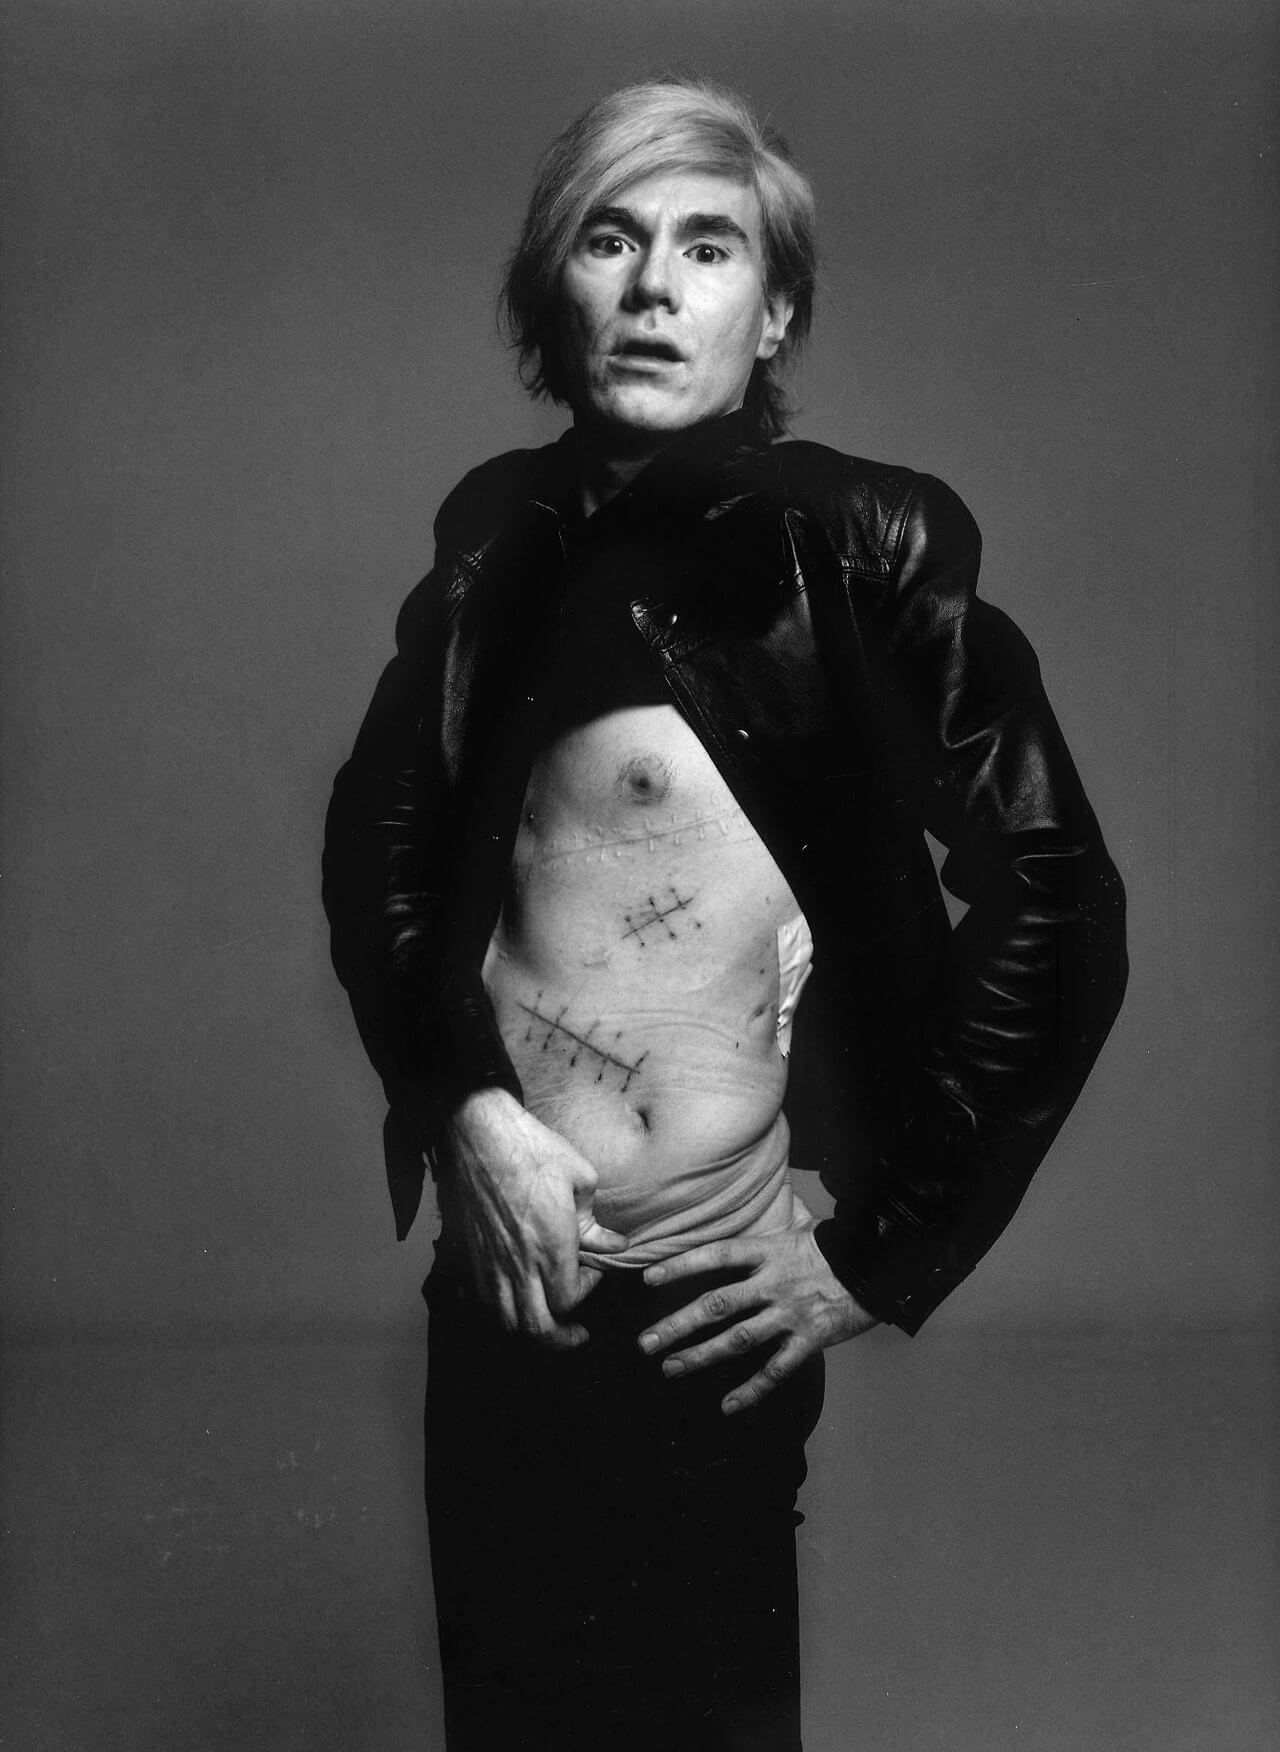 Richard Avedon's 1969 portrait of Andy Warhol, revealing his surgical scars.